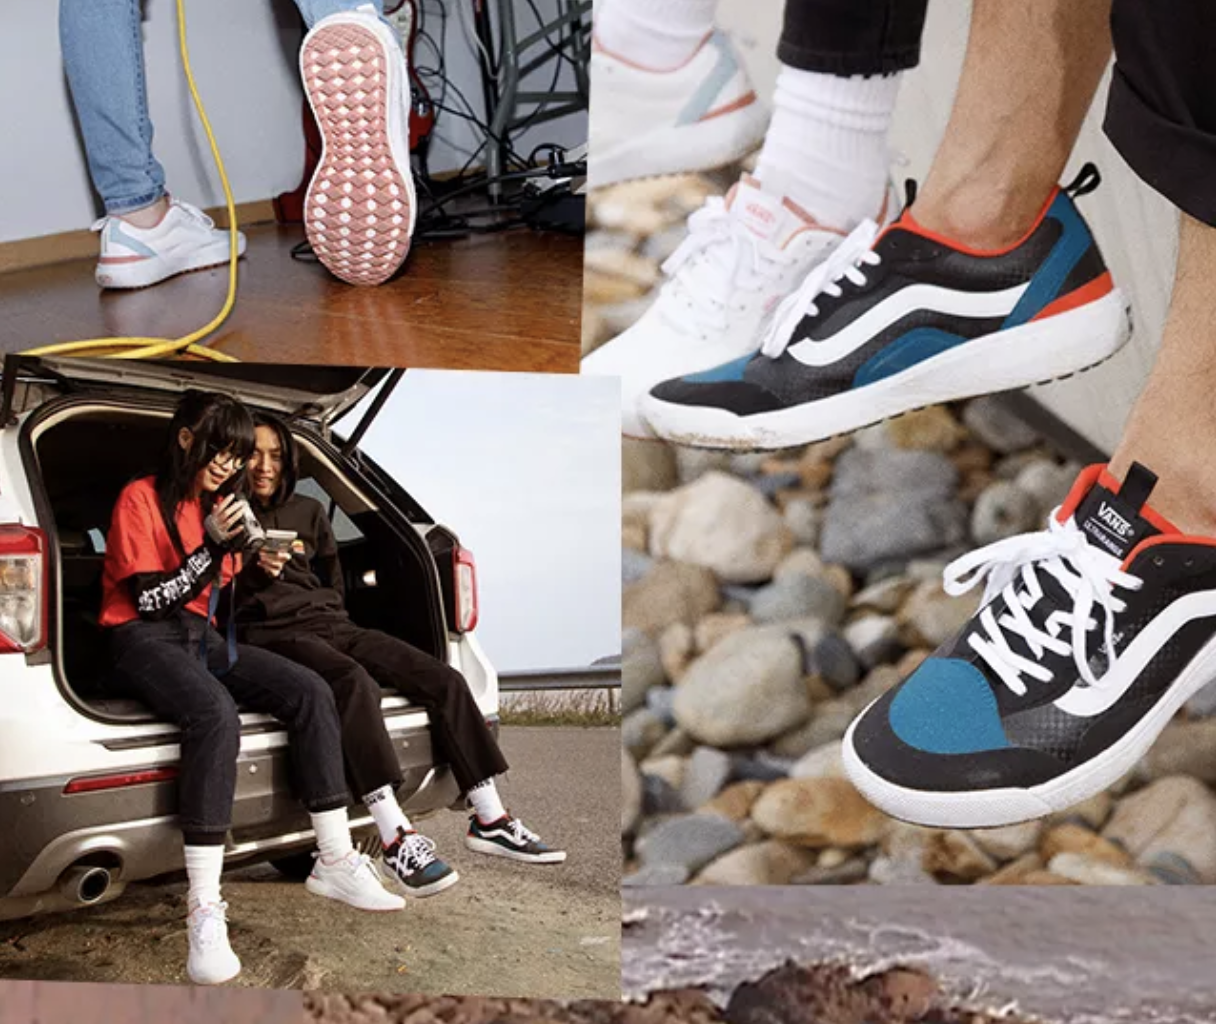 CEO Steve Rendle sees a big opportunity in the Vans brand, where the company is taking orders four-to-five months out due to high demand in early prep for the 2021 holiday season.